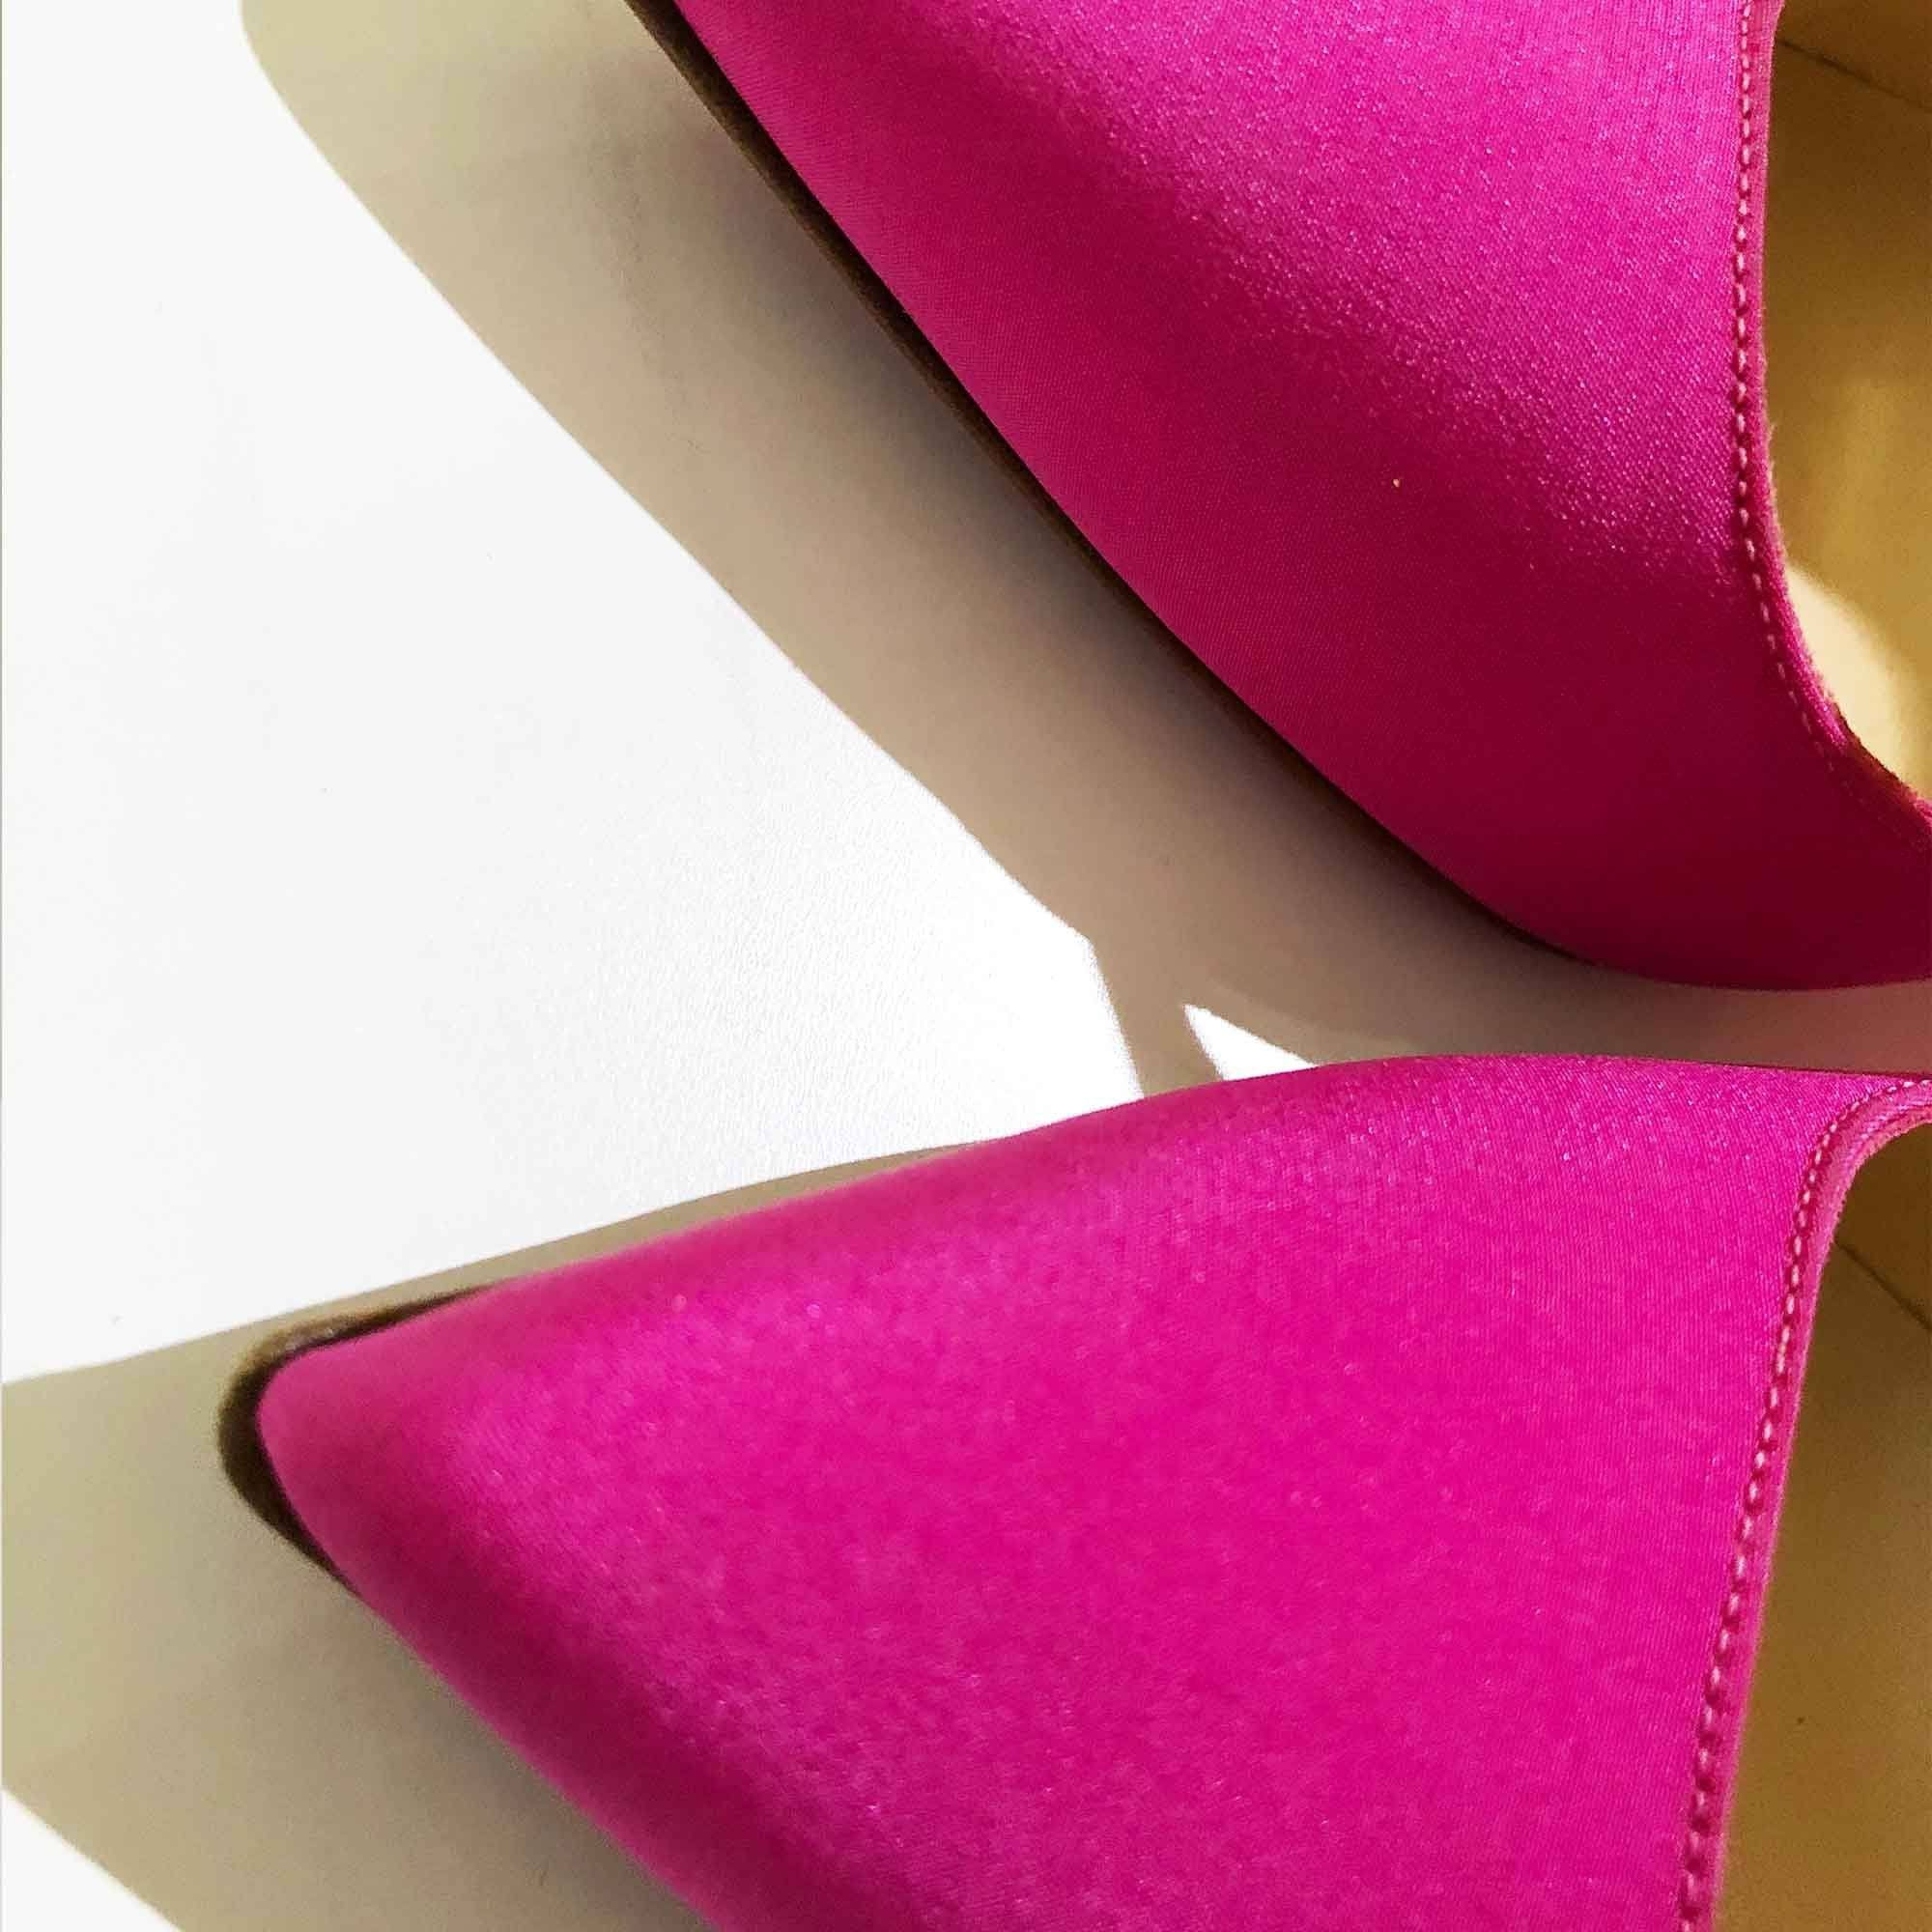 Christian Louboutin Pensee 120mm Satin Pumps